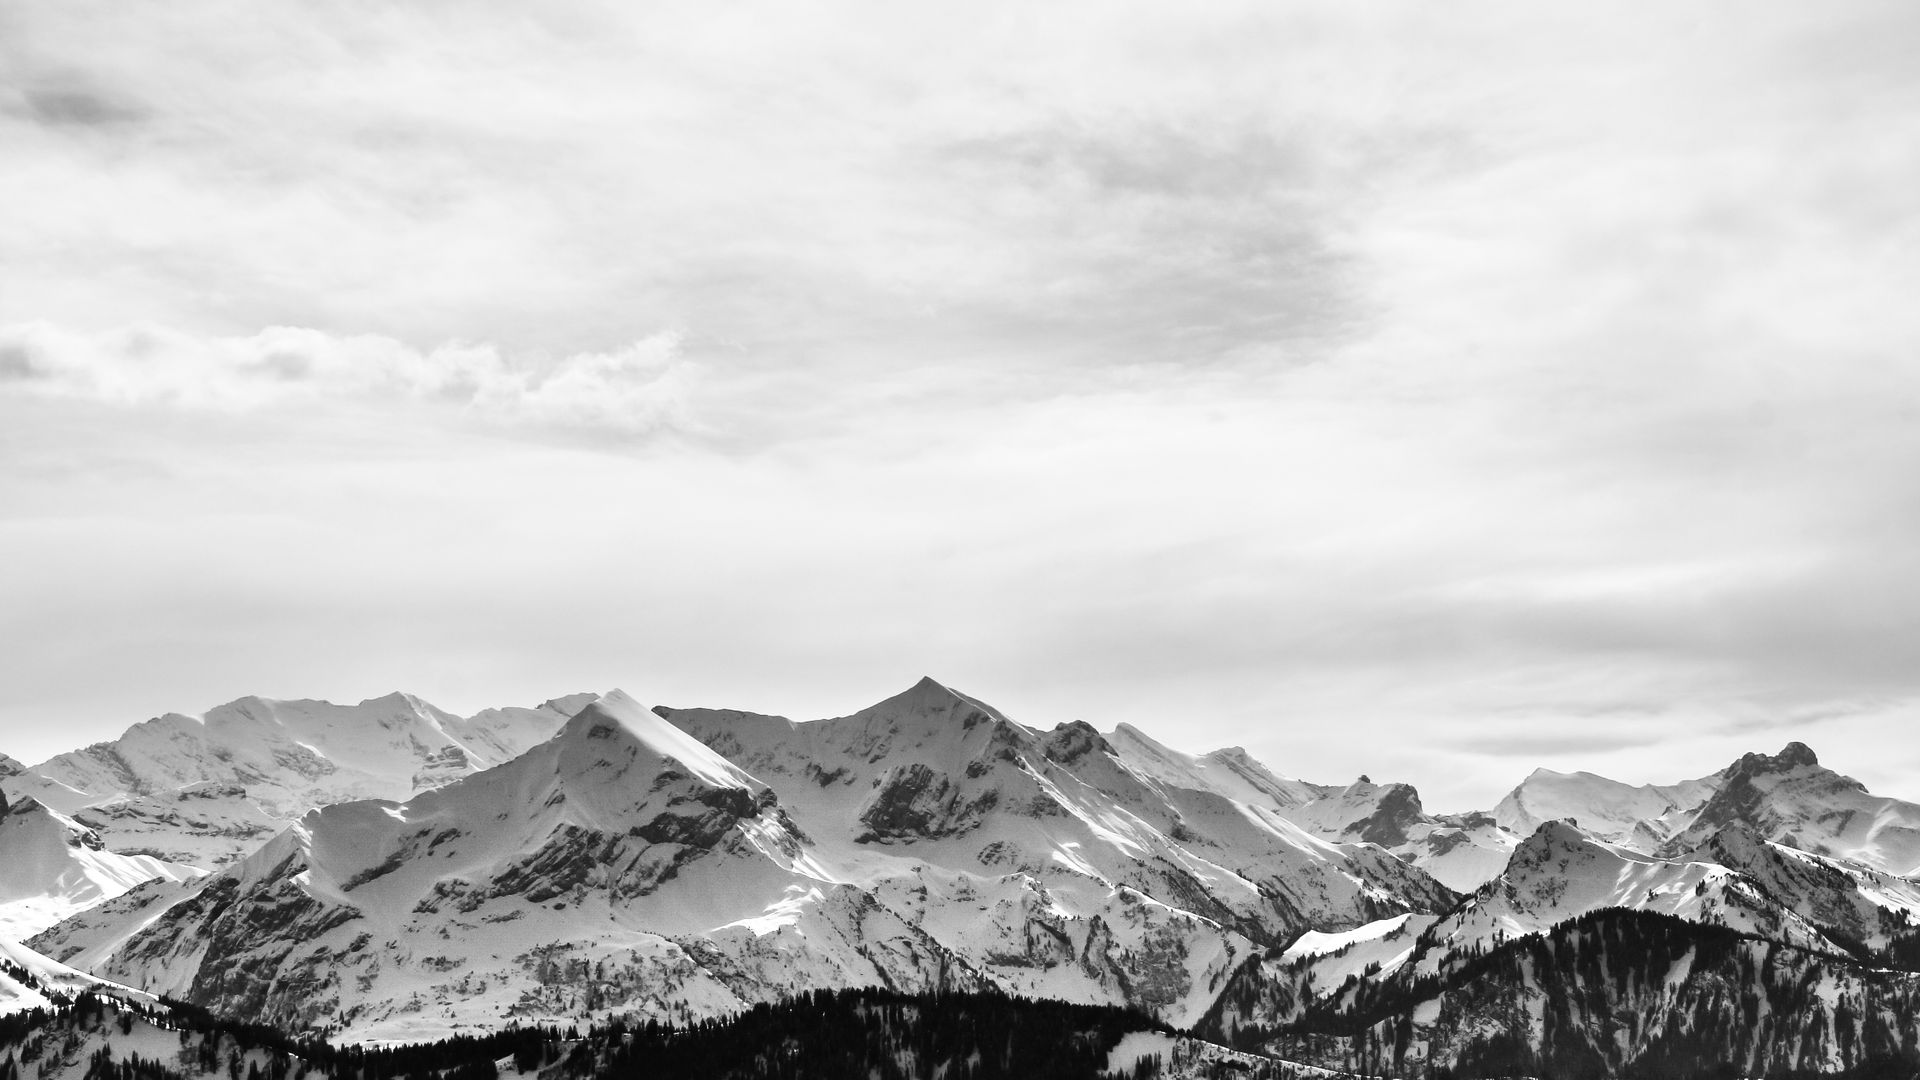 Bernese Mountain Wallpaper en blanco y negro - Wallpaper Stream